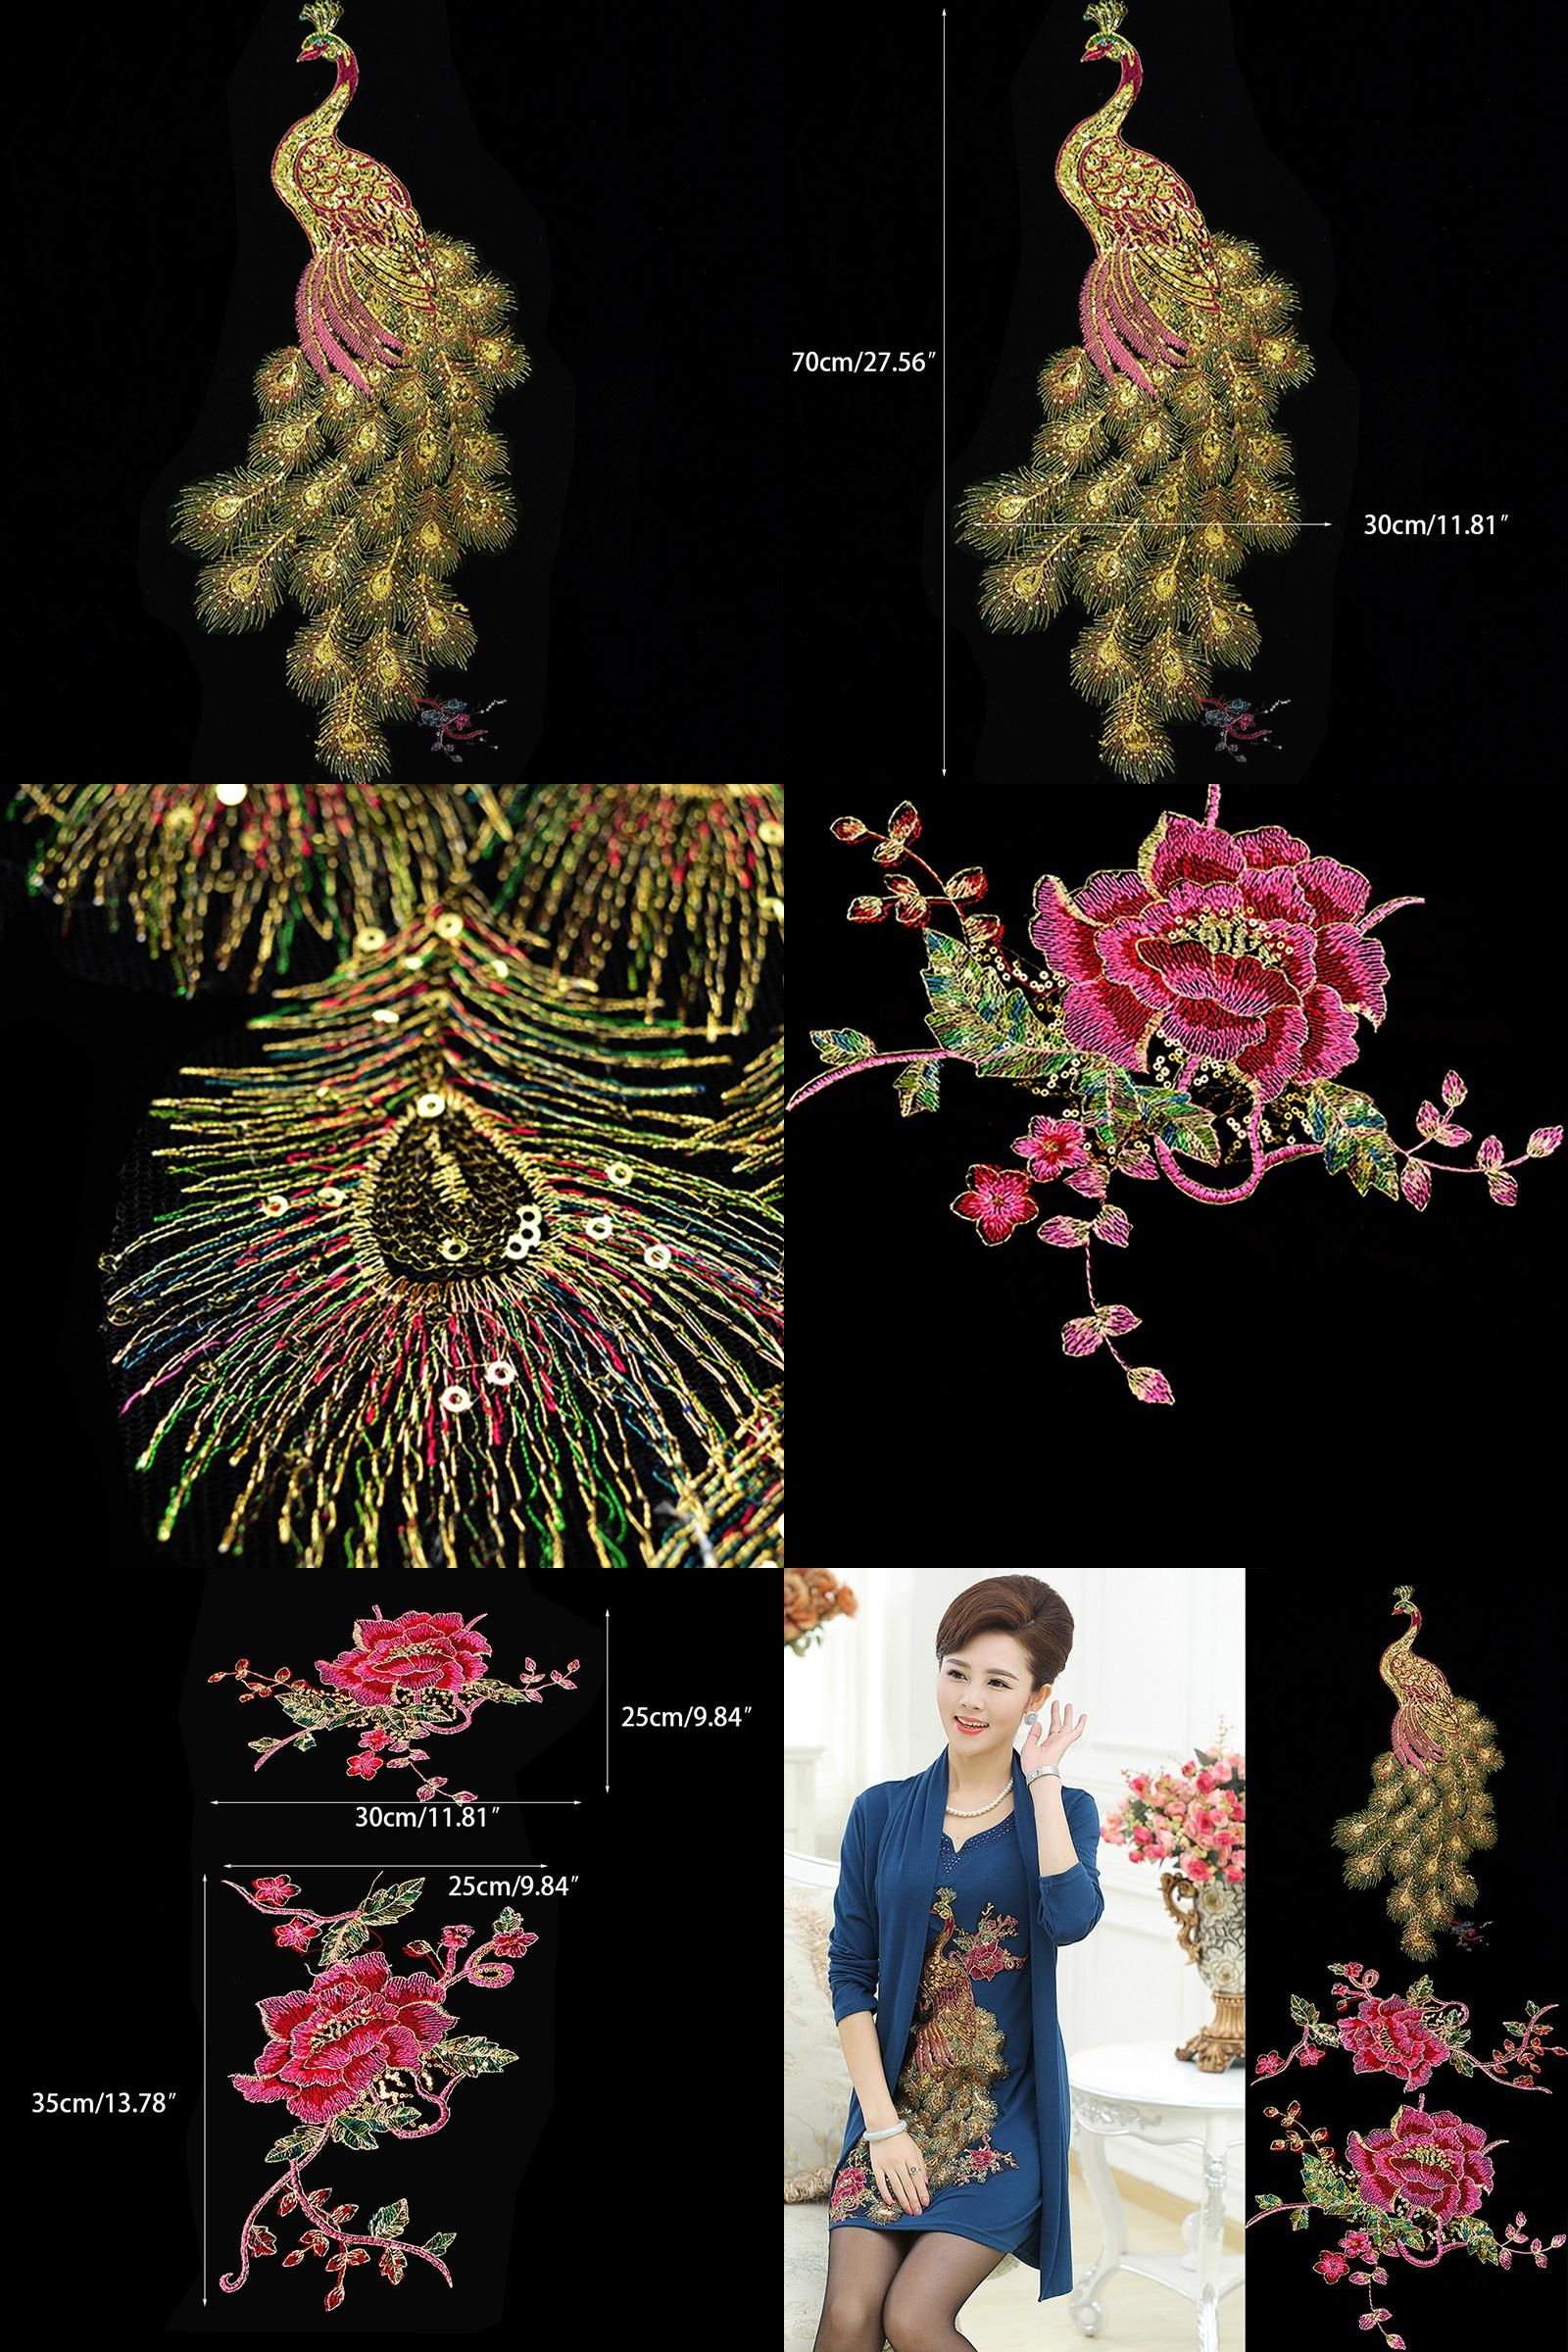 046a46afe7686 Visit to Buy] DIY Peacock Flower Sequins Embroidered Patches For ...